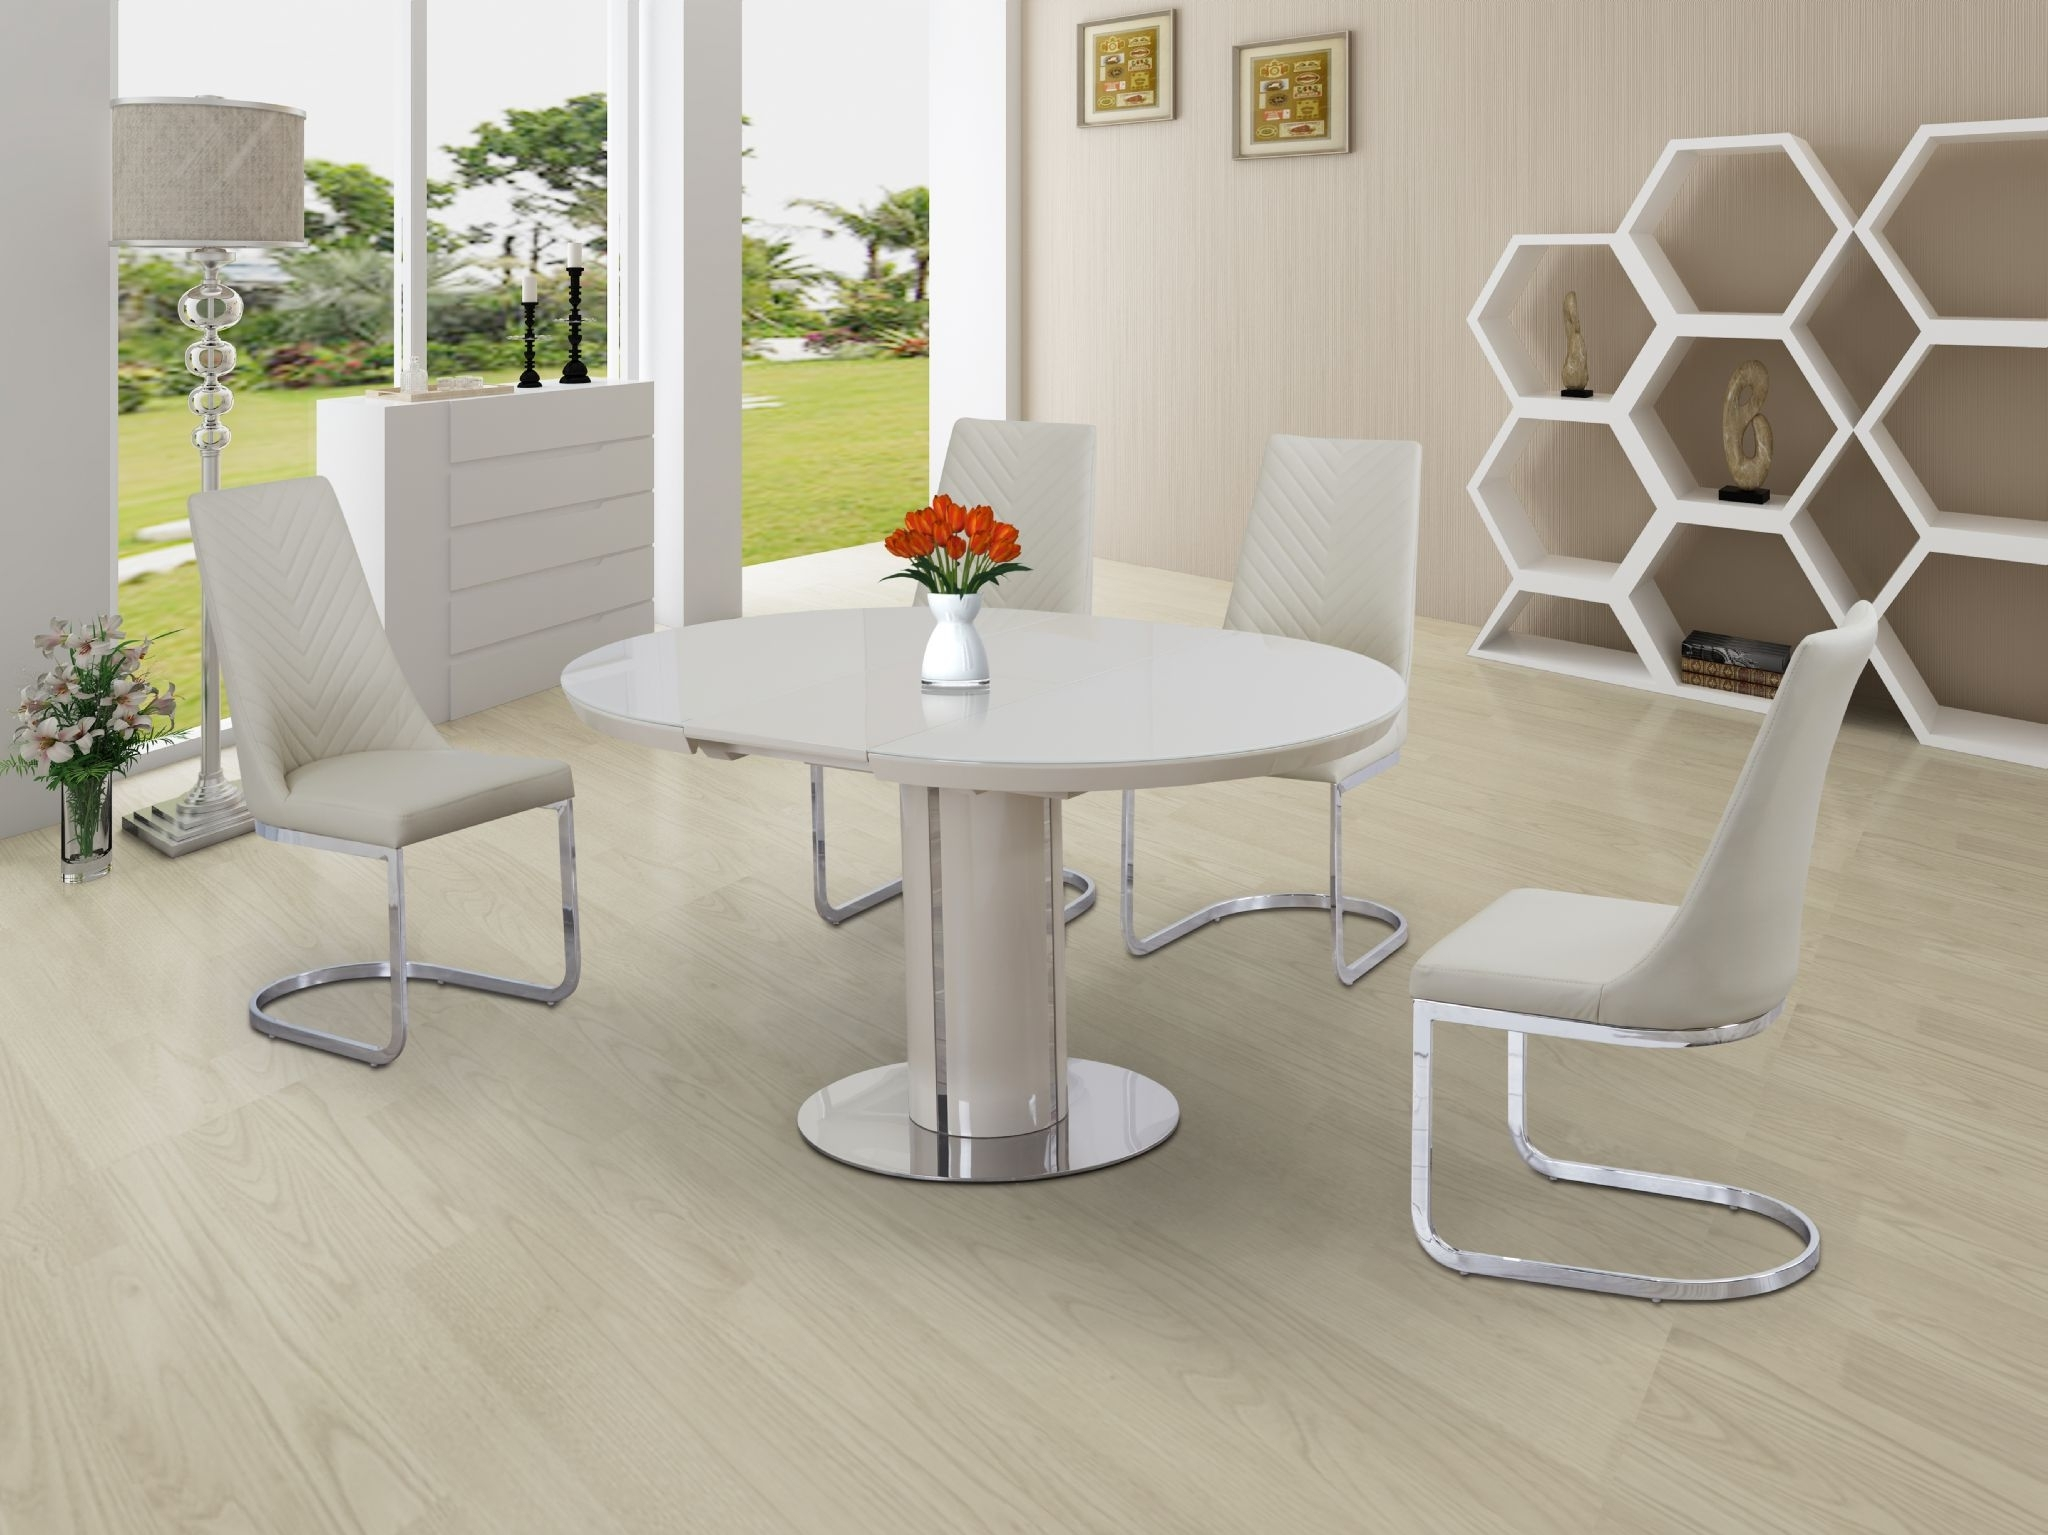 Preferred Buy Cream Small Round Extendable Dining Table Today With Regard To Small White Extending Dining Tables (View 17 of 25)